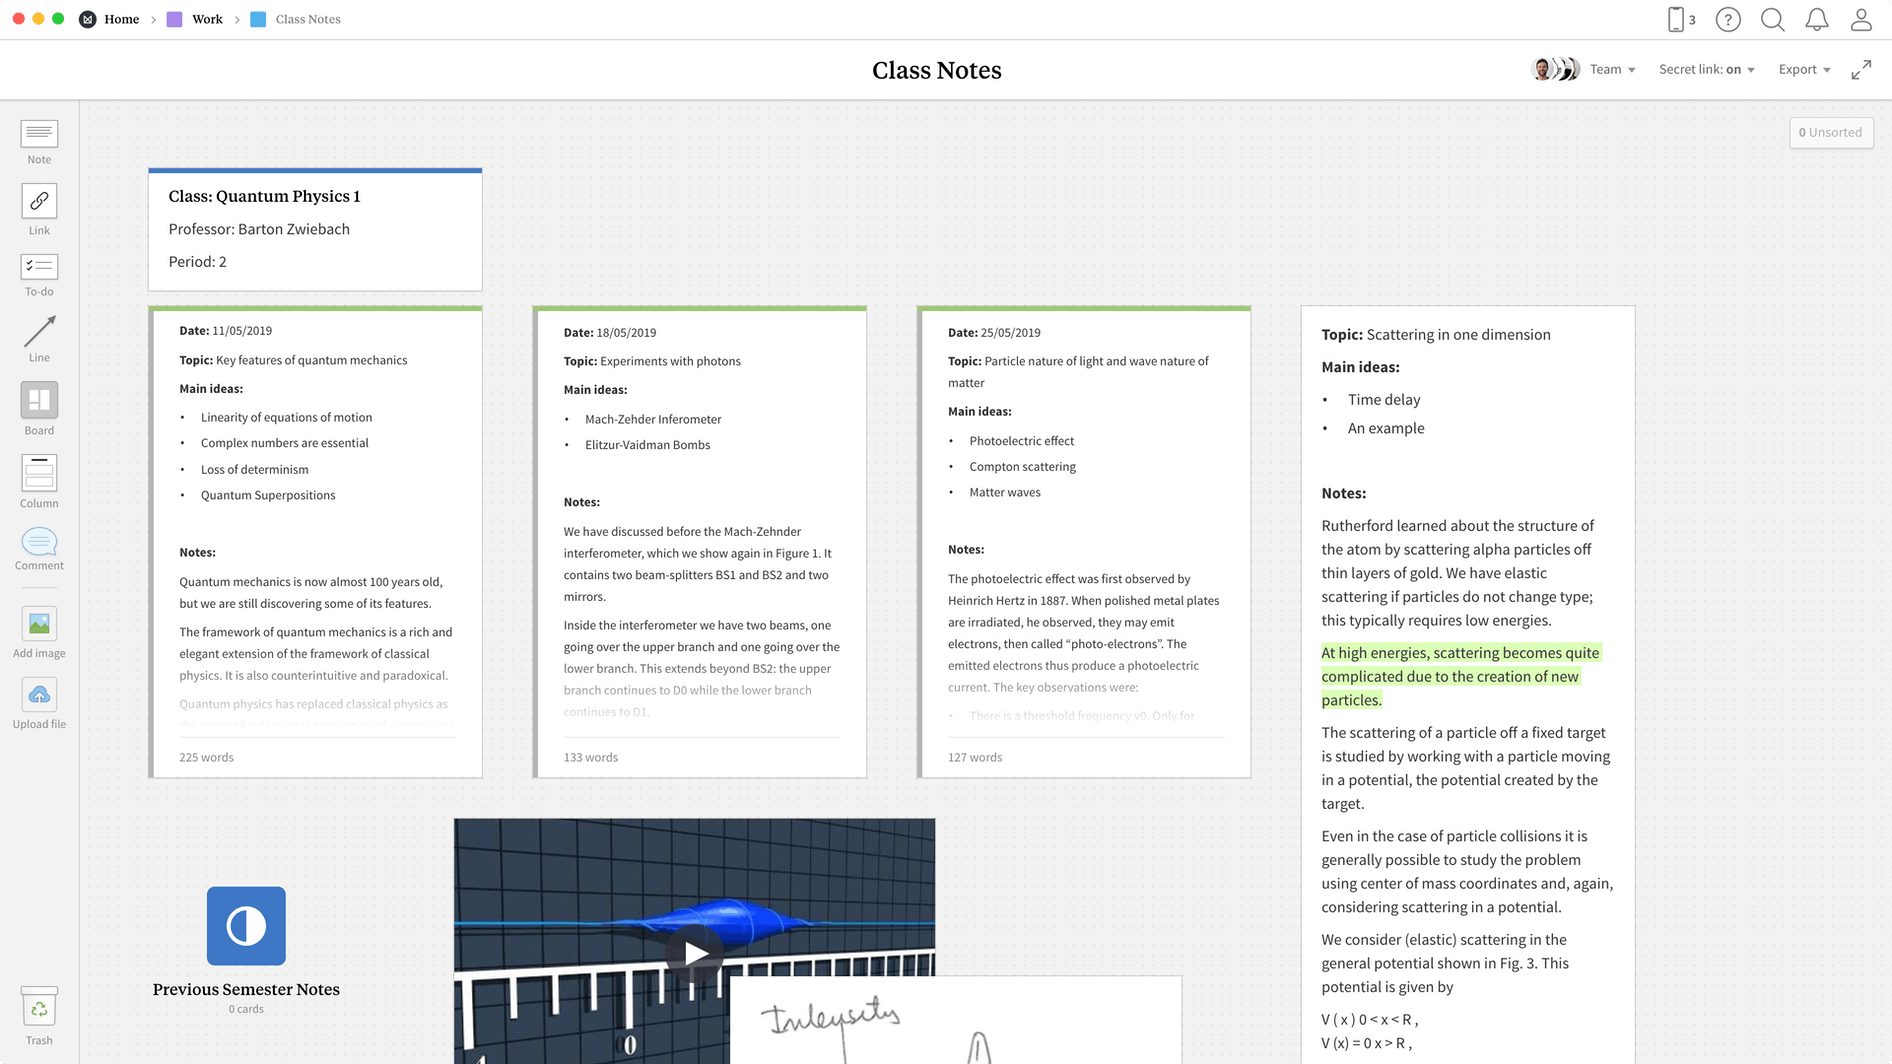 Class Notes Template, within the Milanote app